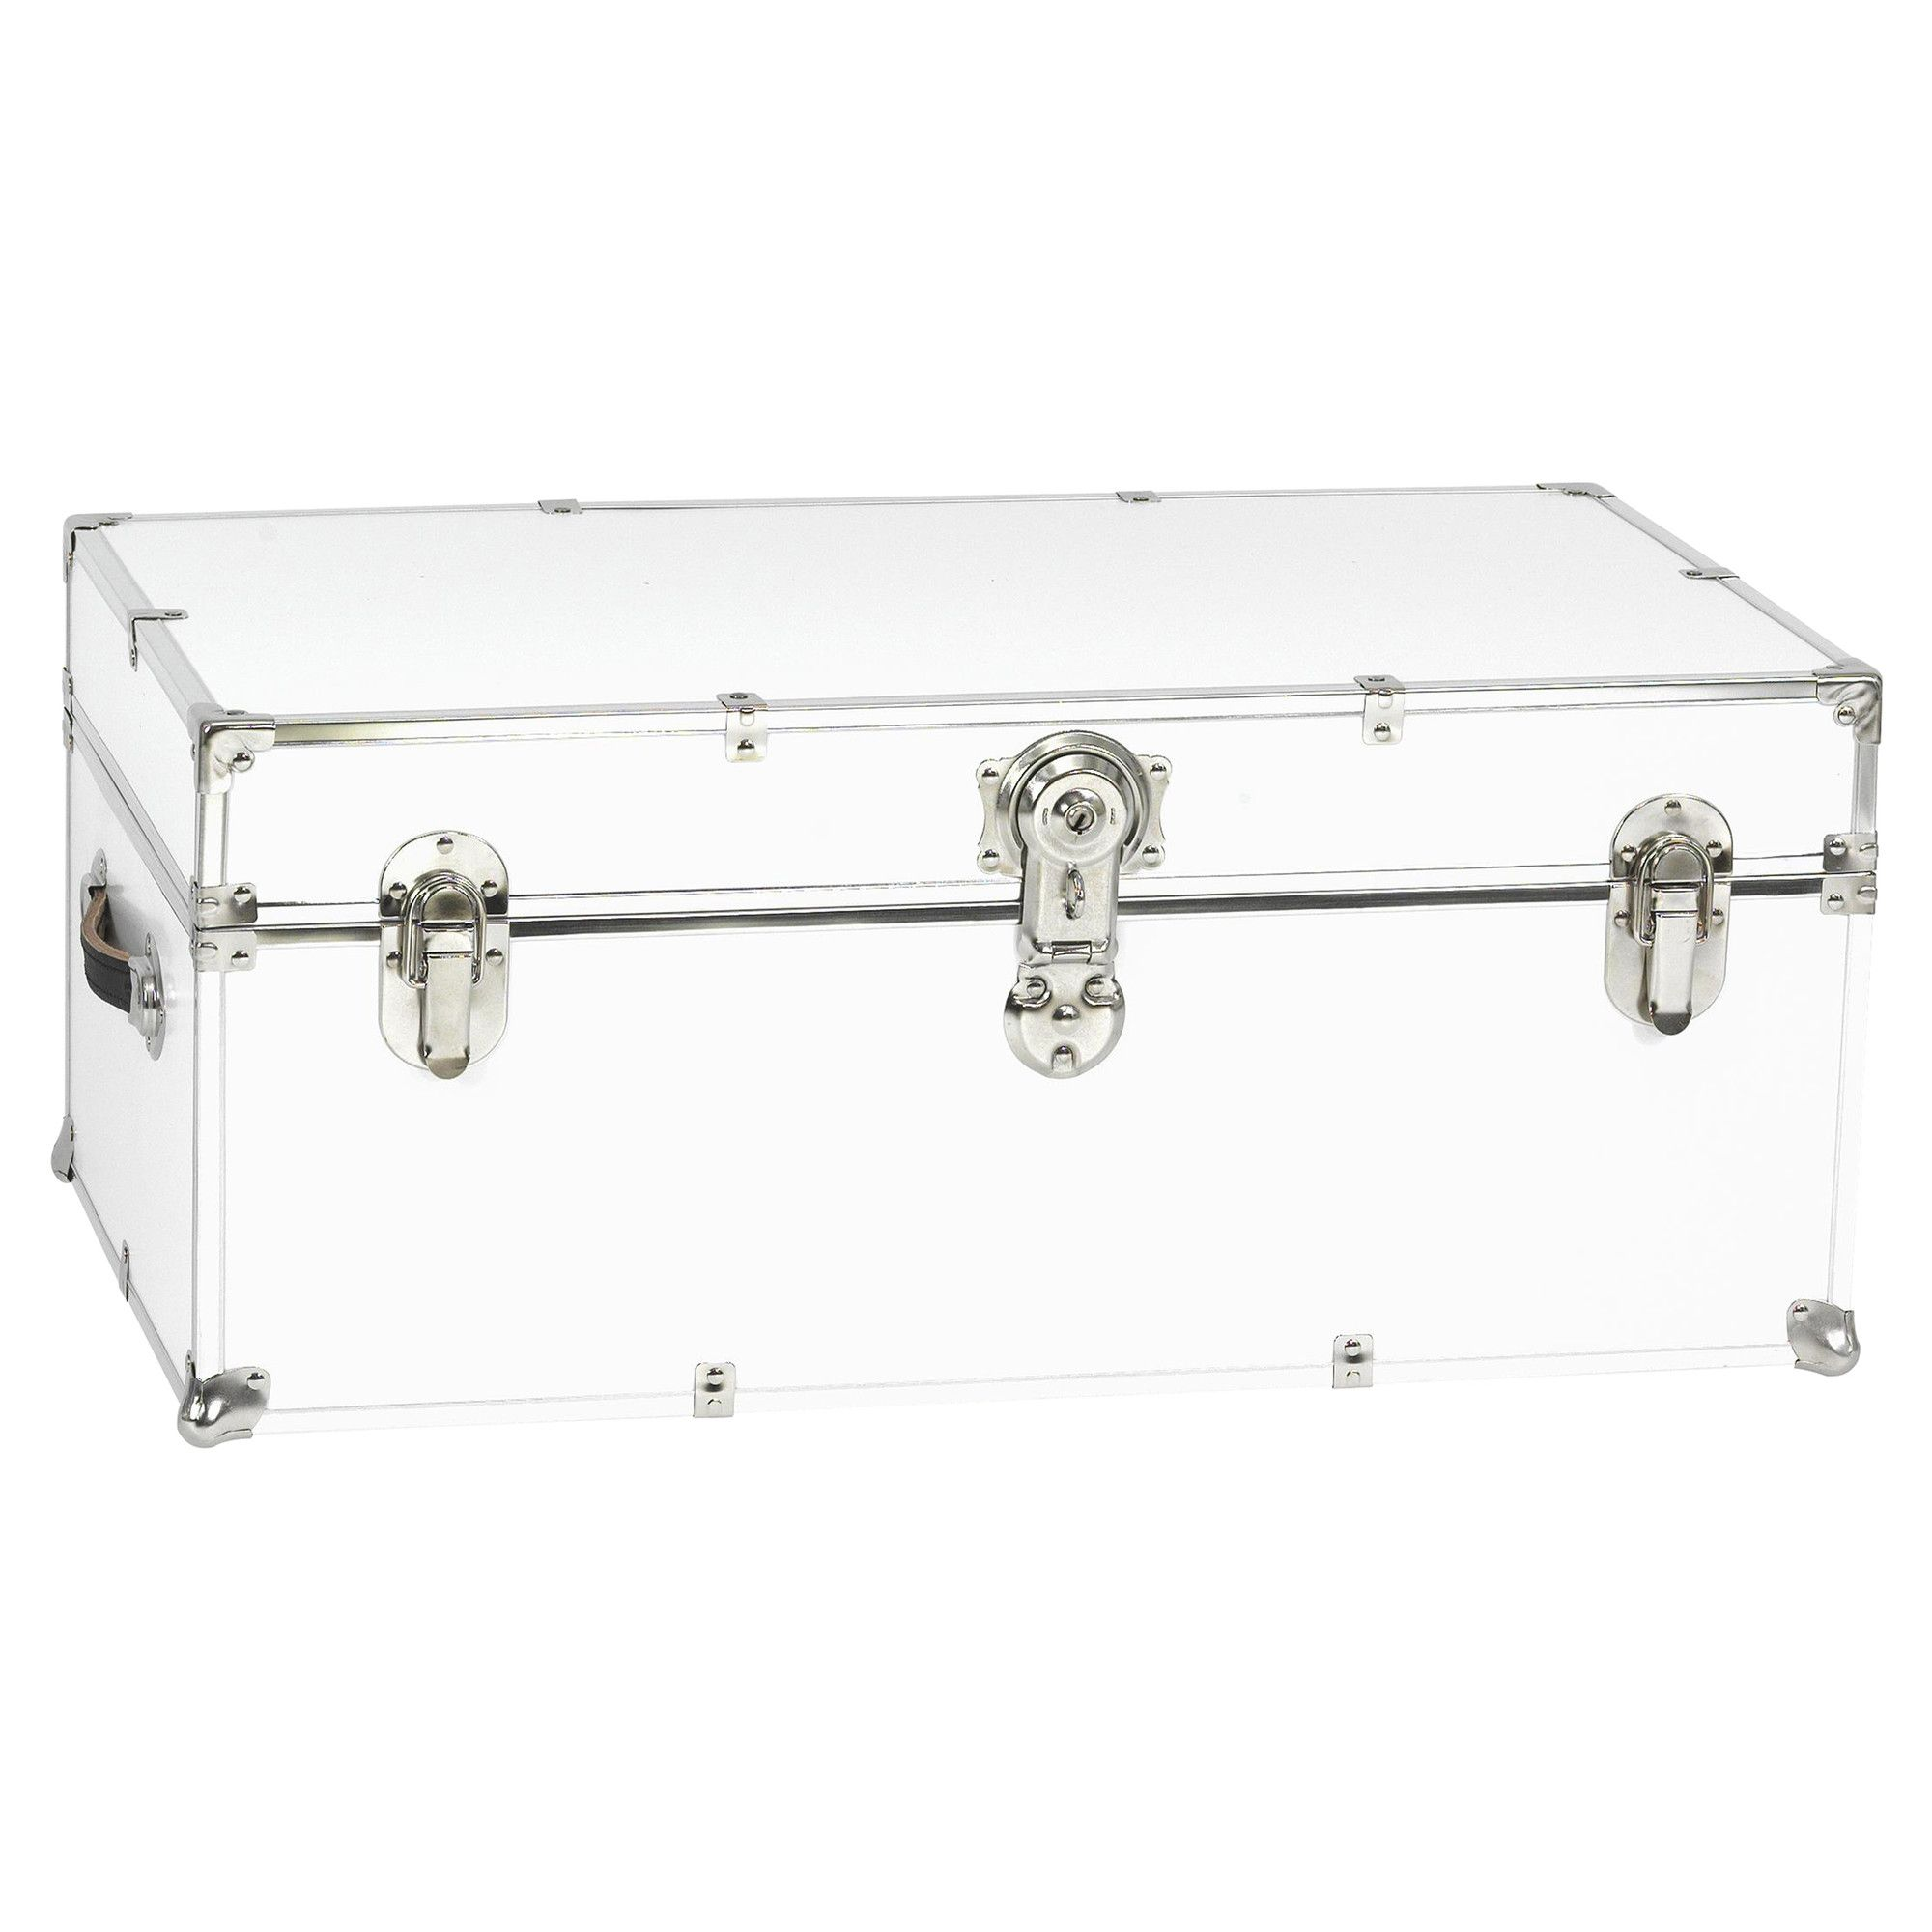 Merveilleux Stanley Case Works Small White Steel Storage Trunk For Students Living In  Dorm Rooms Or Apartments At College Or Boarding School, On Campus Or Off.